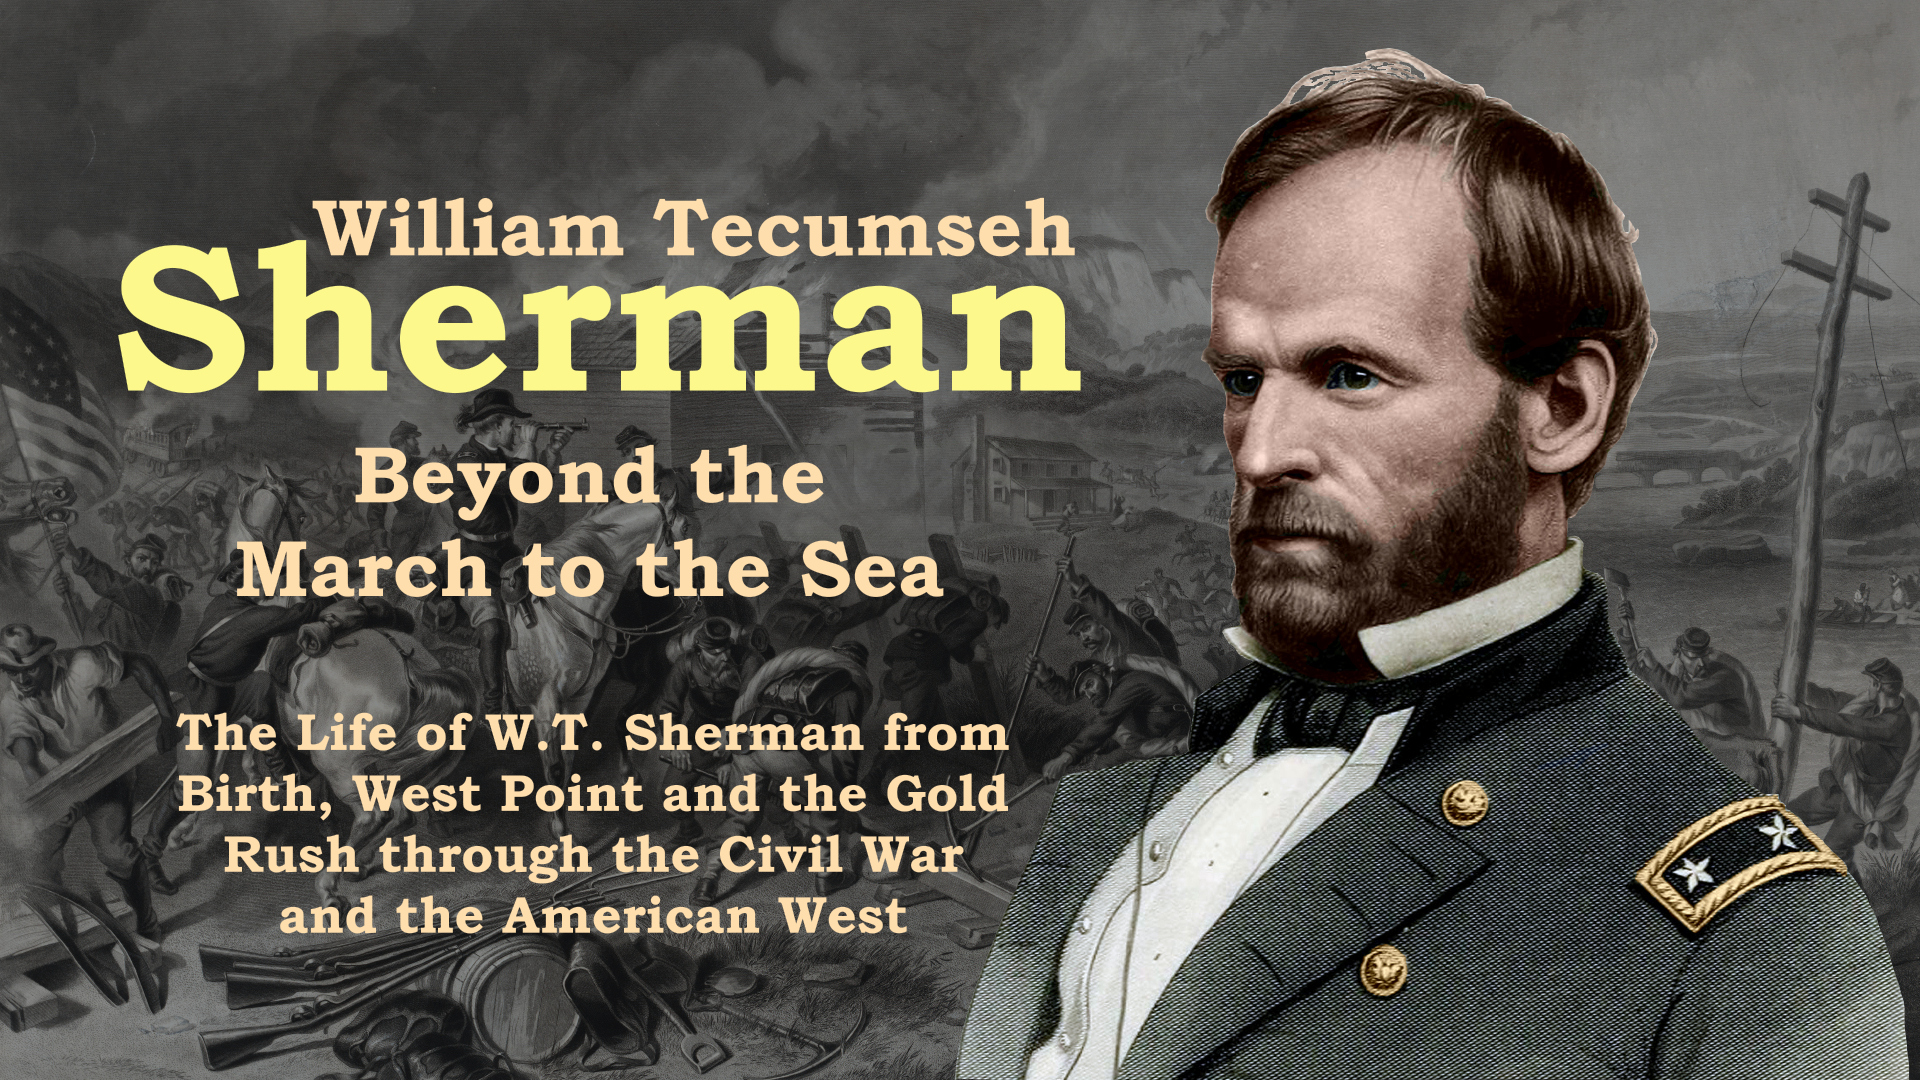 William Tecumseh Sherman: Beyond the March to the Sea